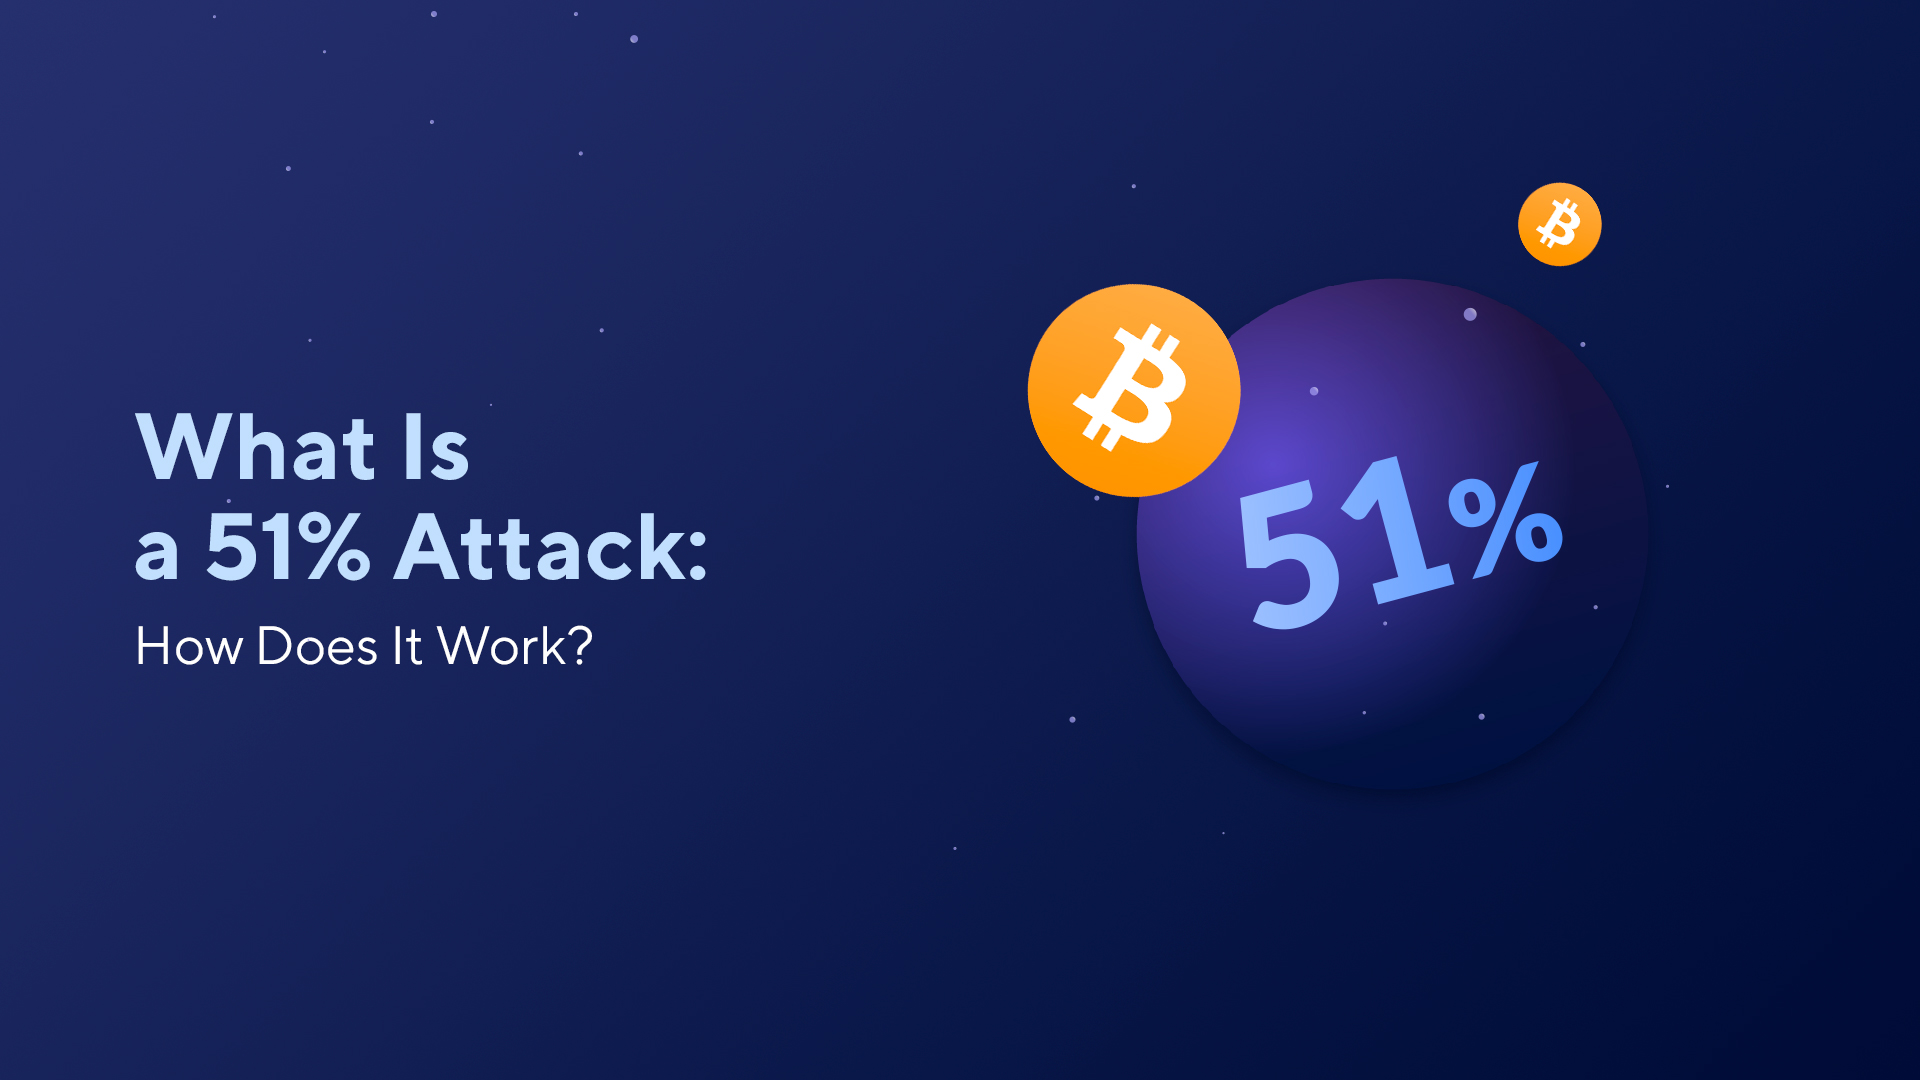 What Is a 51% Attack: How Does It Work?